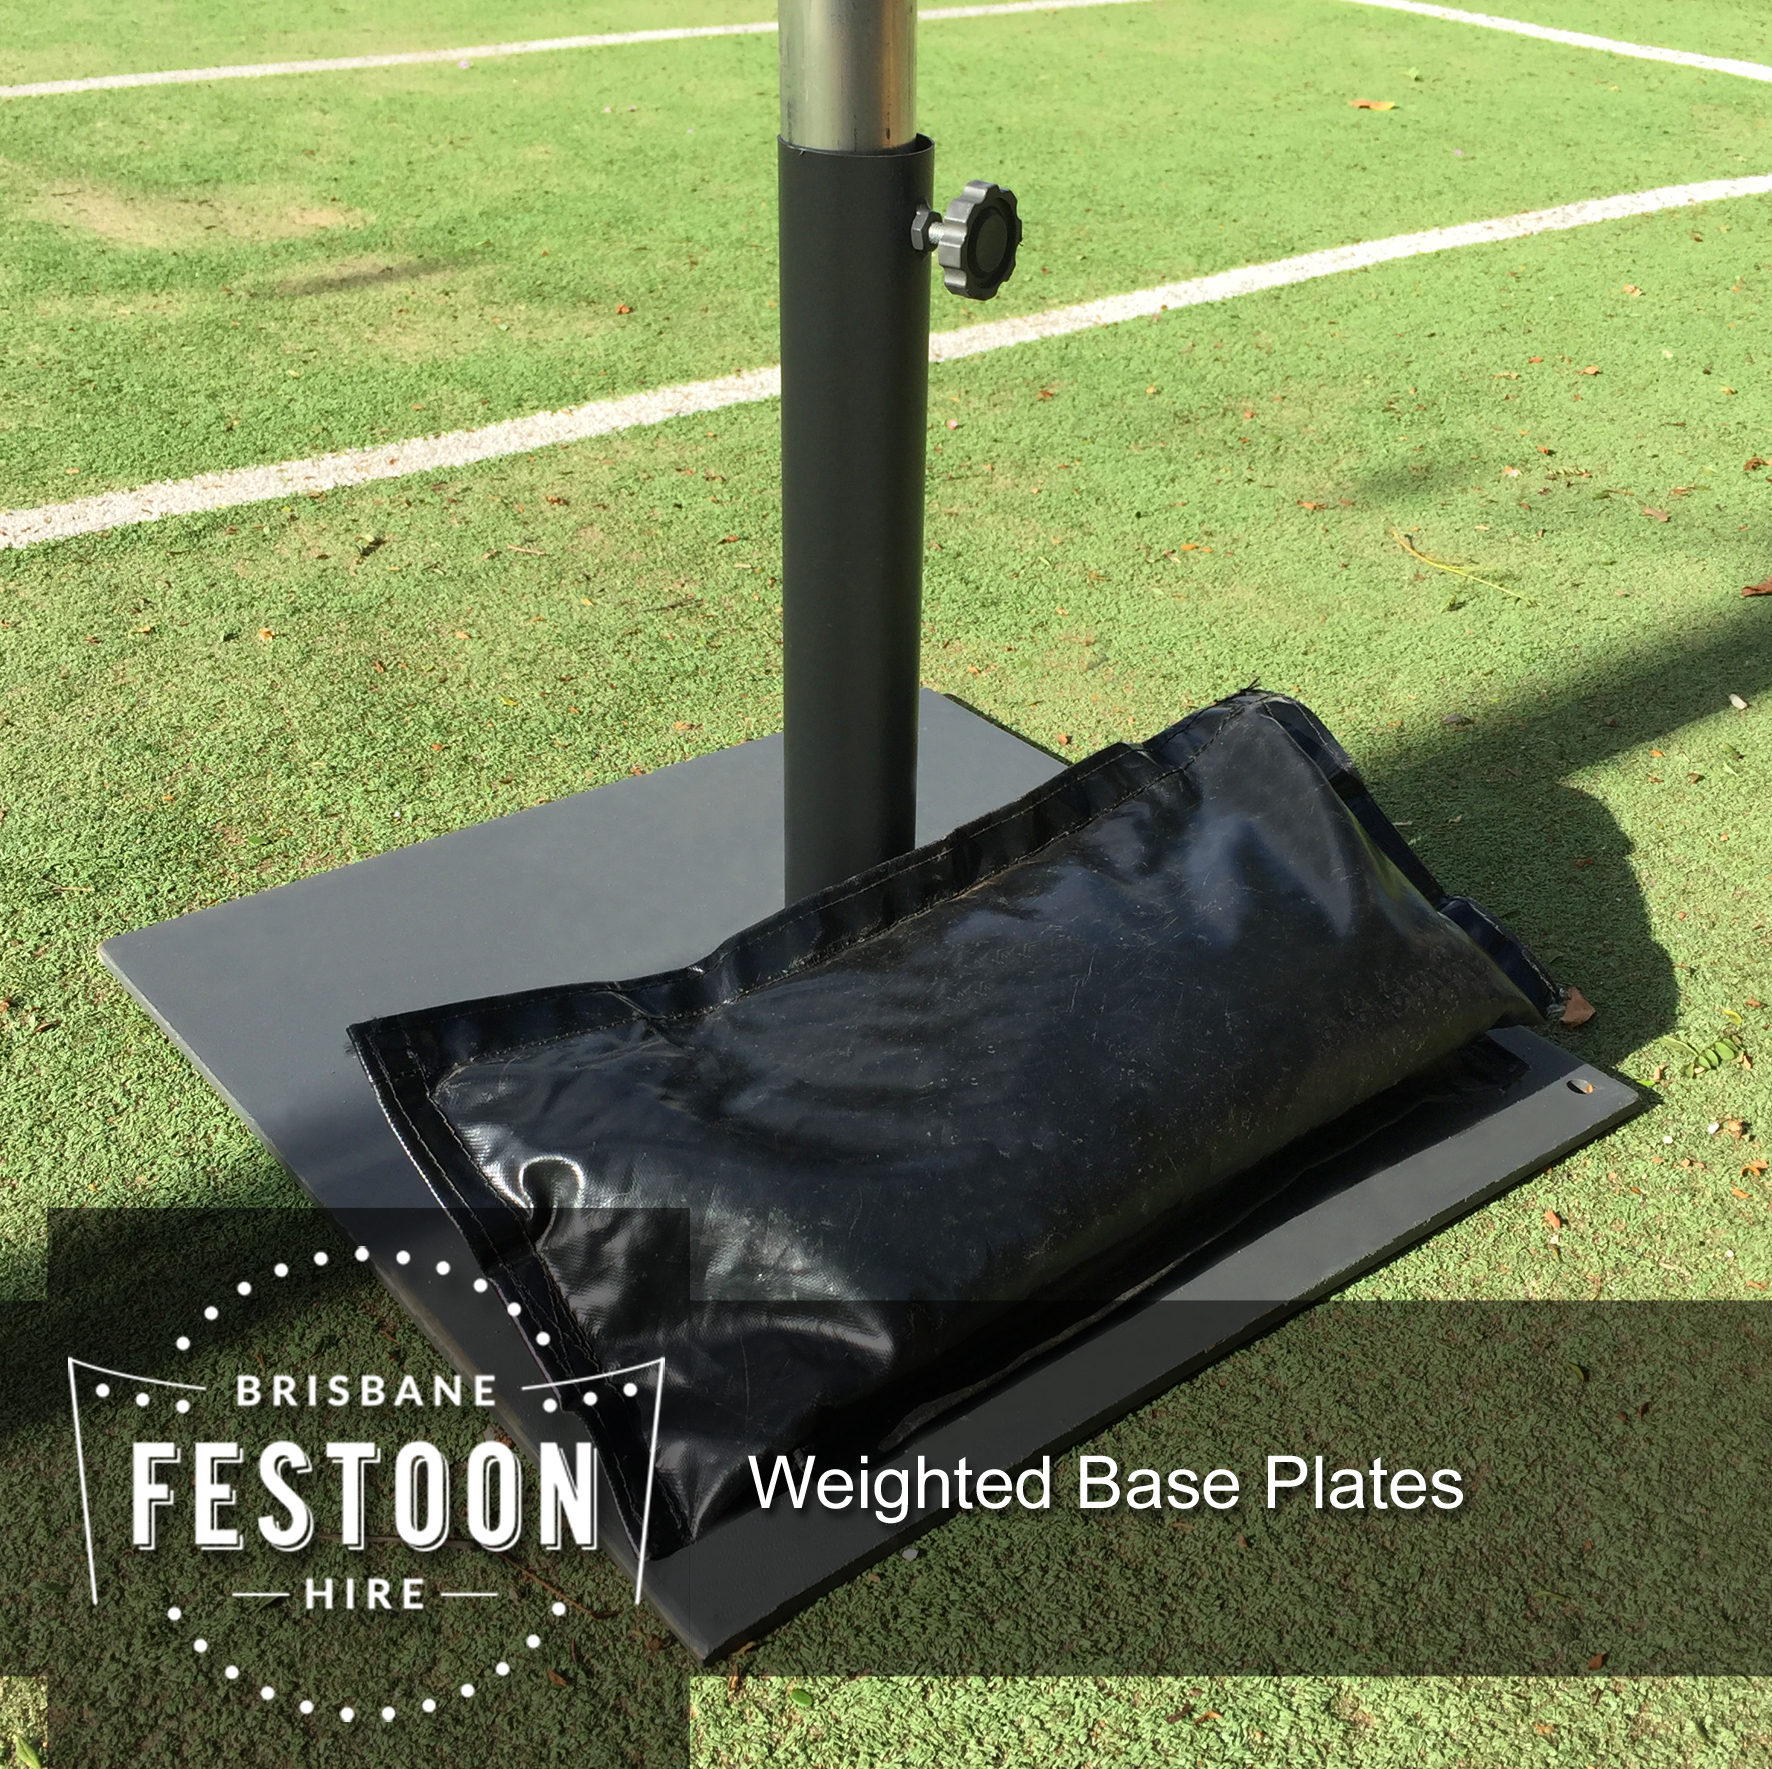 Brisbane Festoon Hire - Base Plate 2.jpg